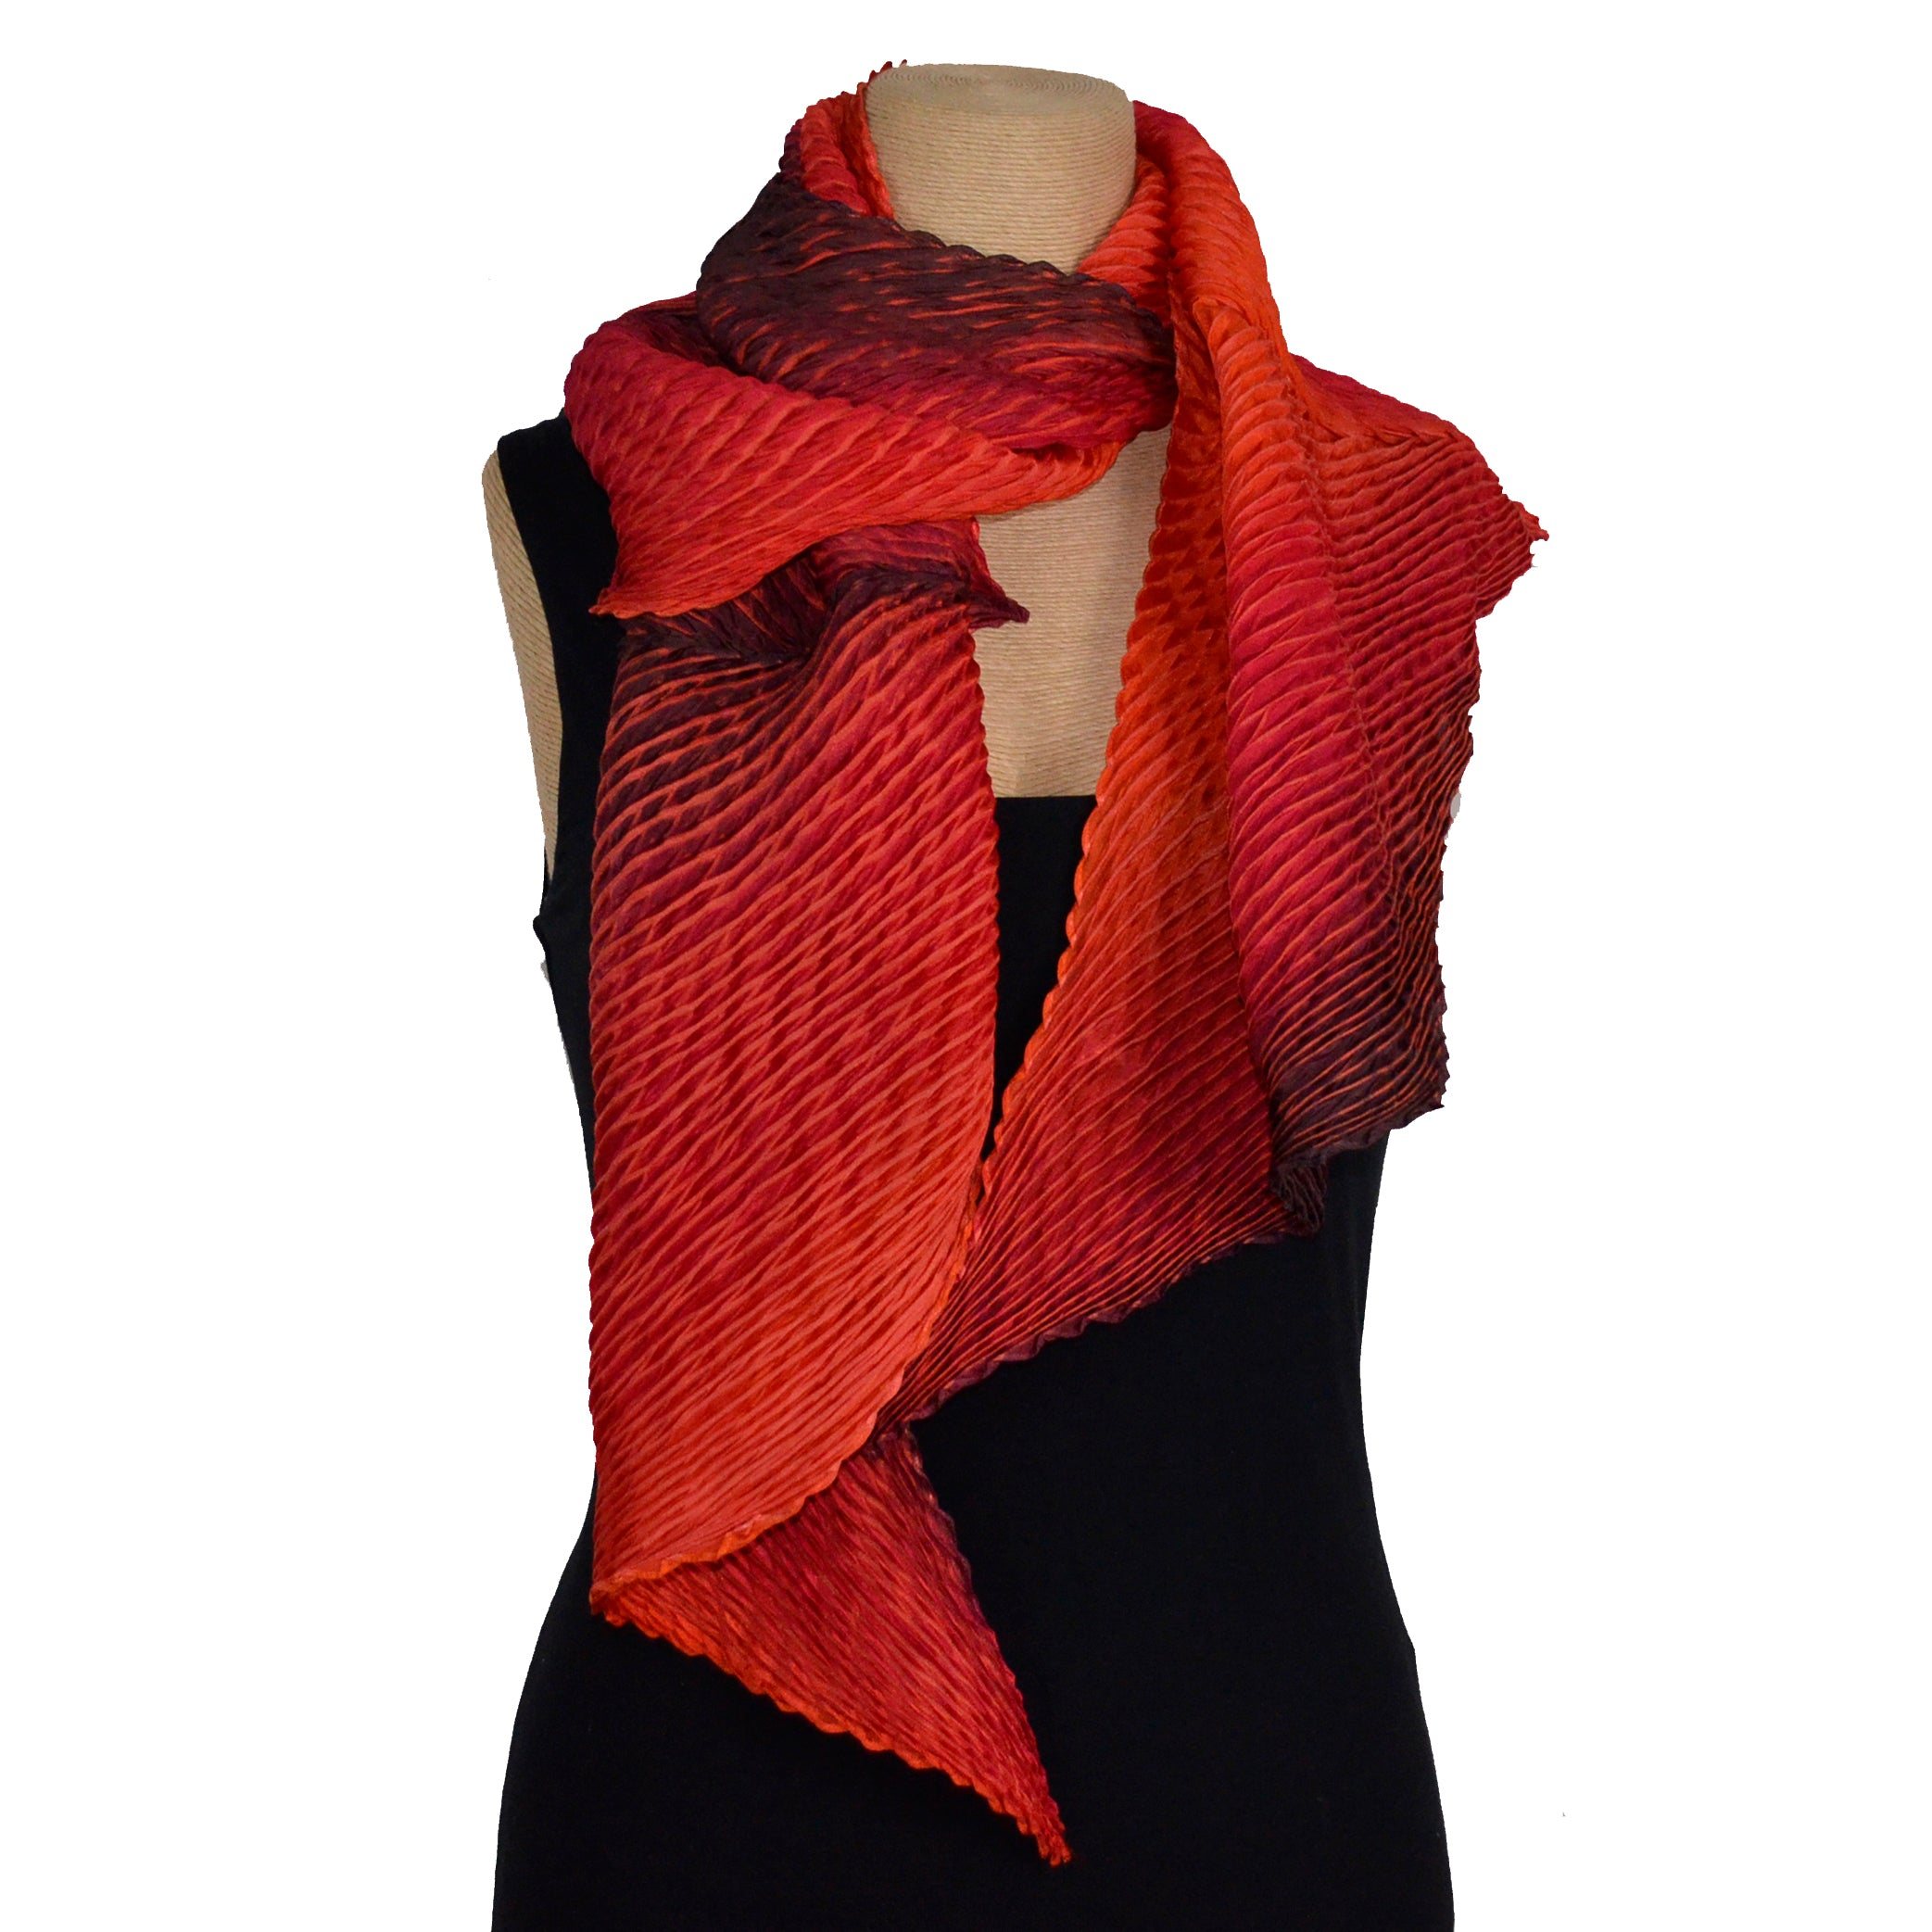 Cathayana Scarf, Zigzag, Red/Black